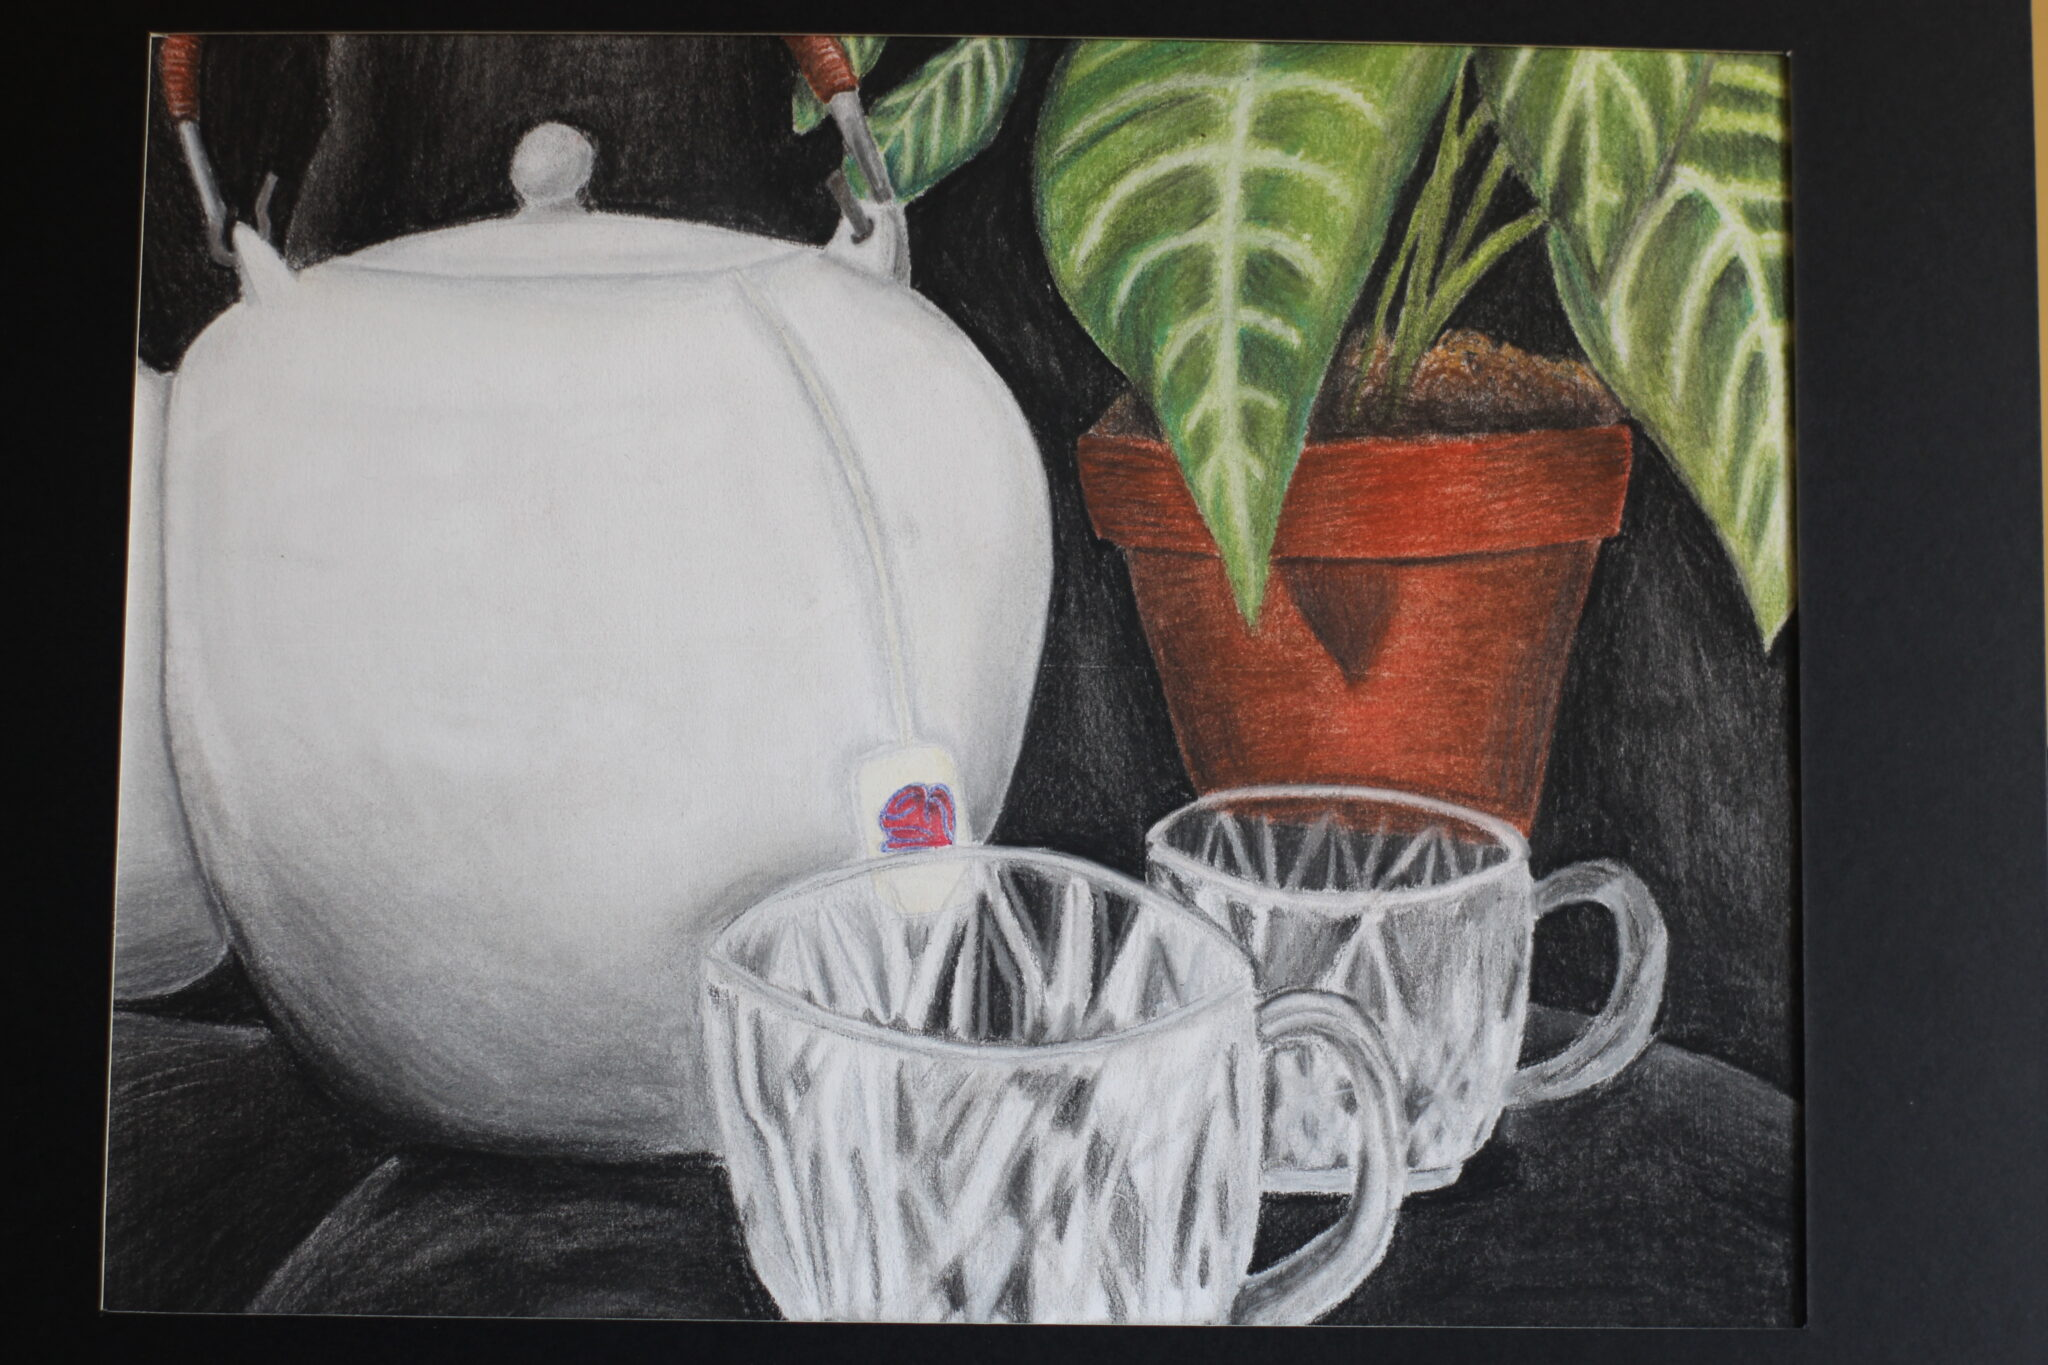 still life of white kettle and glass mugs